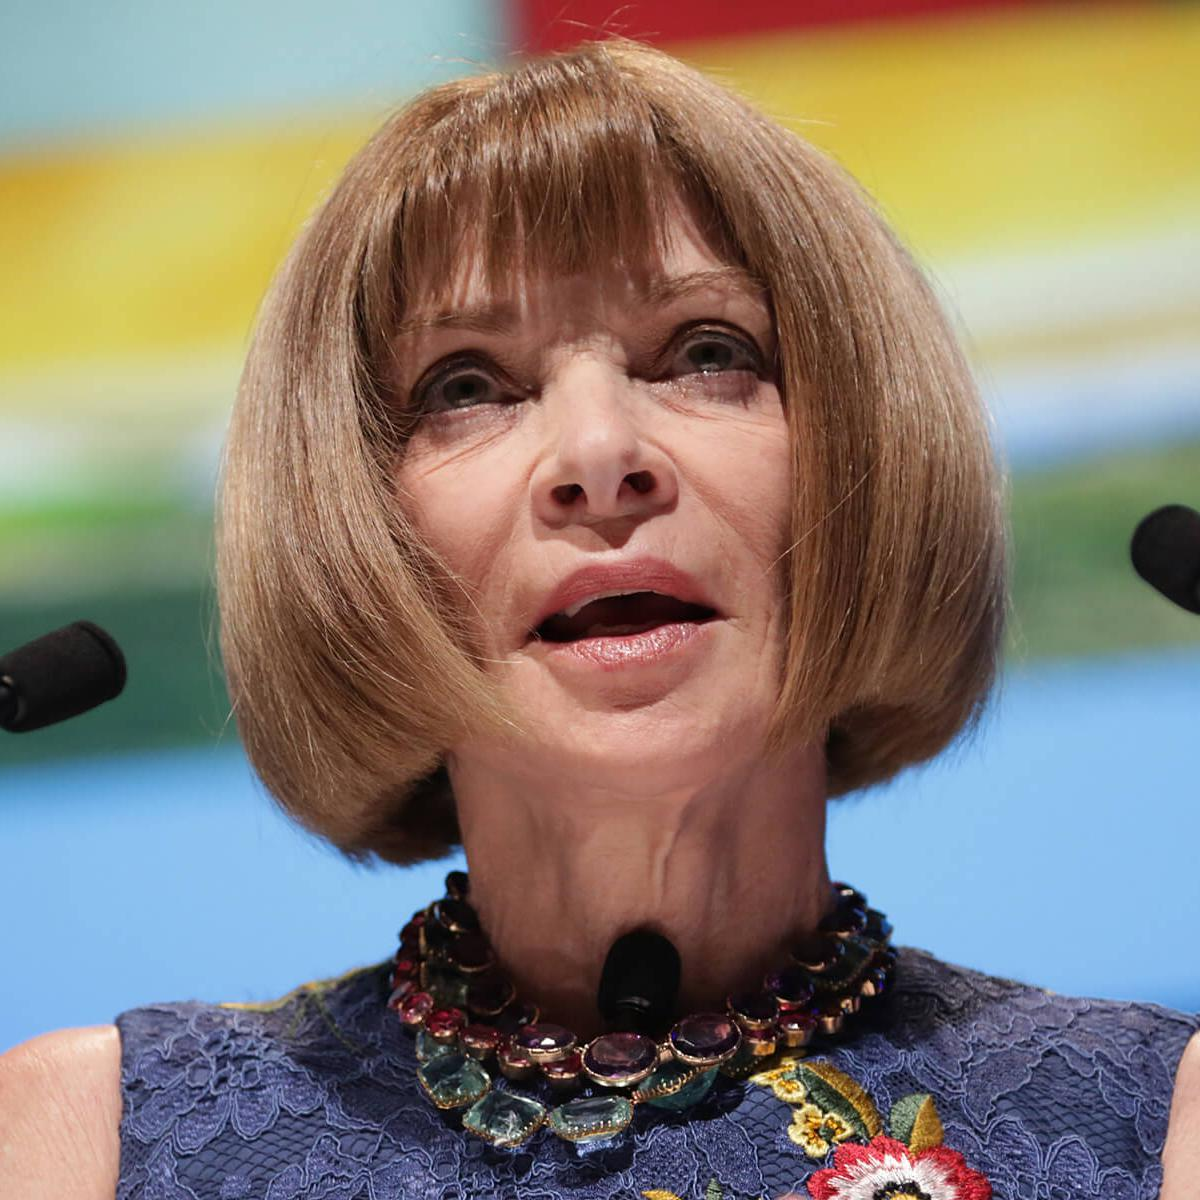 Portrait of Anna Wintour (journalist and editor) by Julian Hanford at Cannes Lions 2017